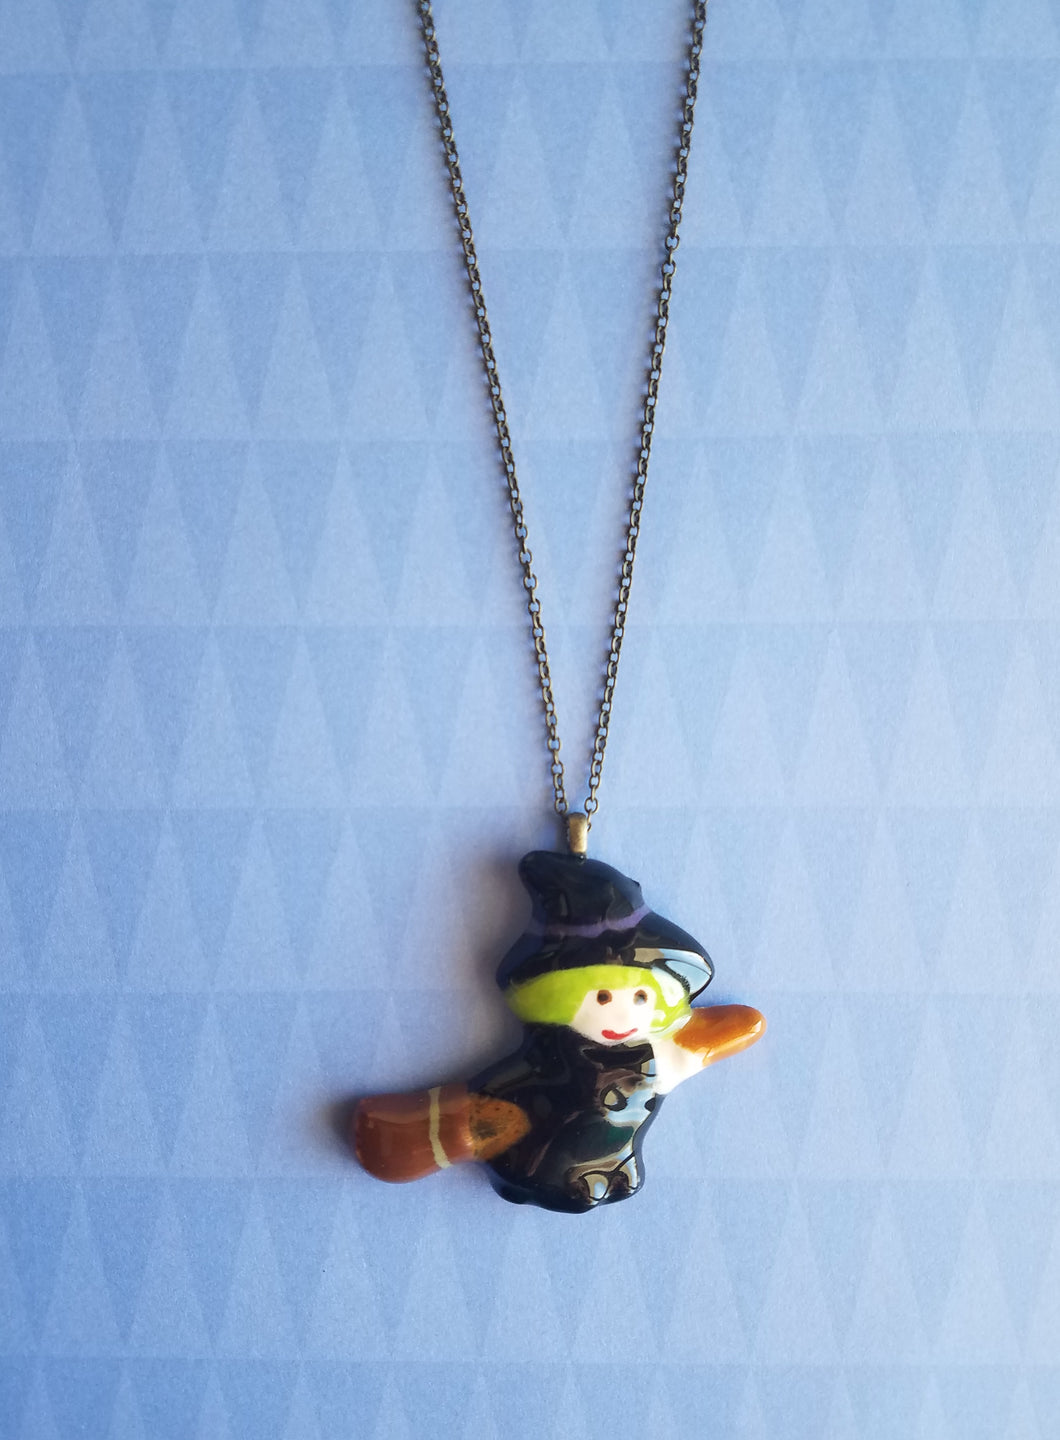 Lil' Witchy Necklace